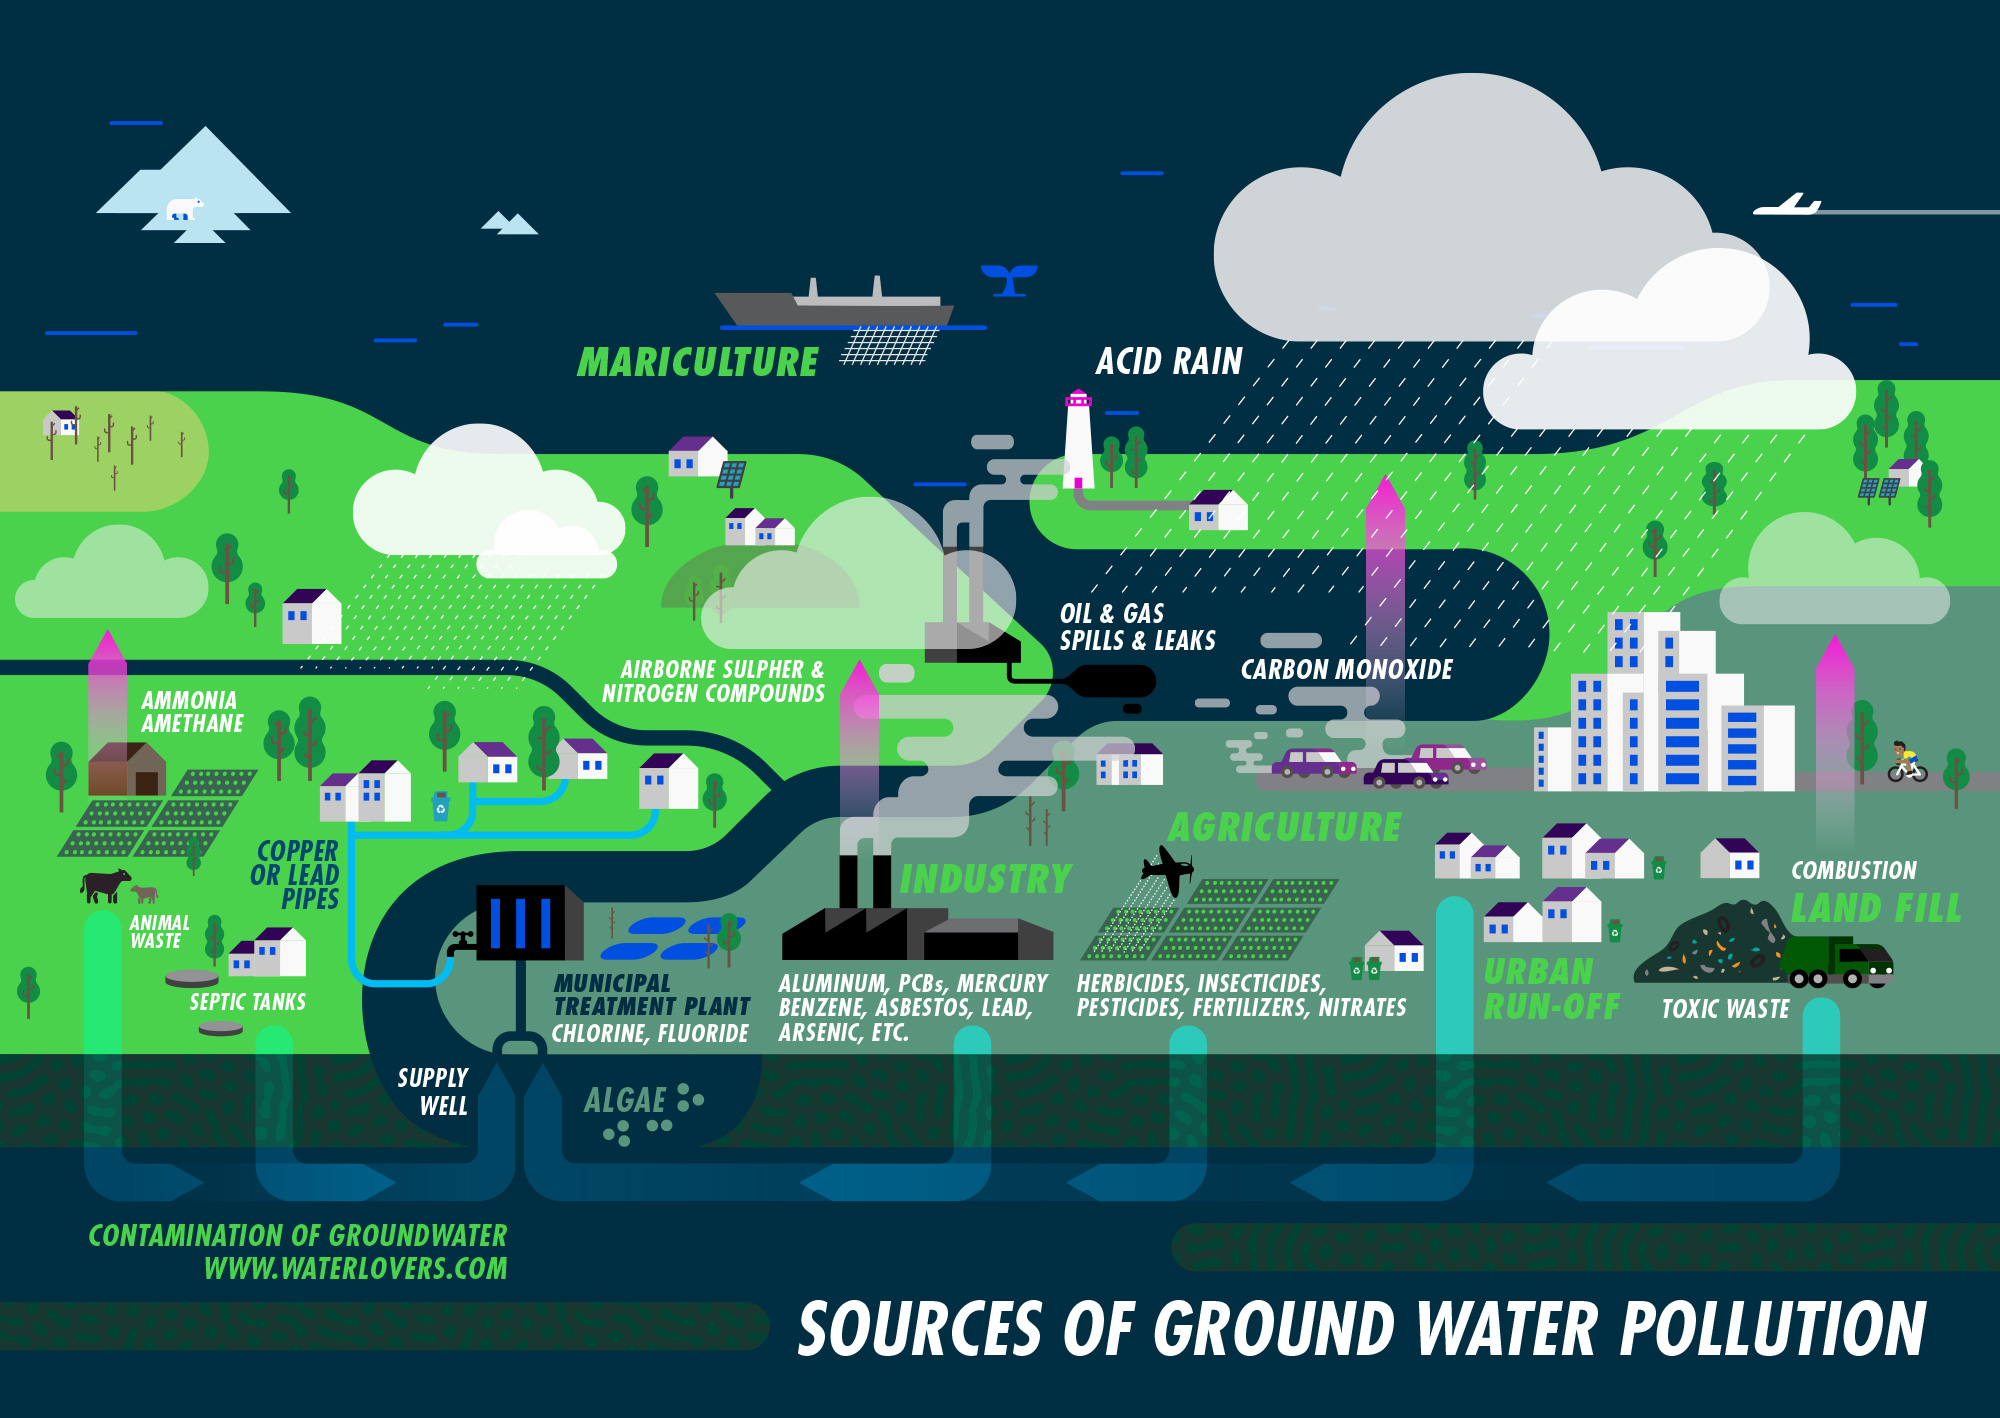 water-pollution-diagram-by-waterlovers-infographic_poster-design2017